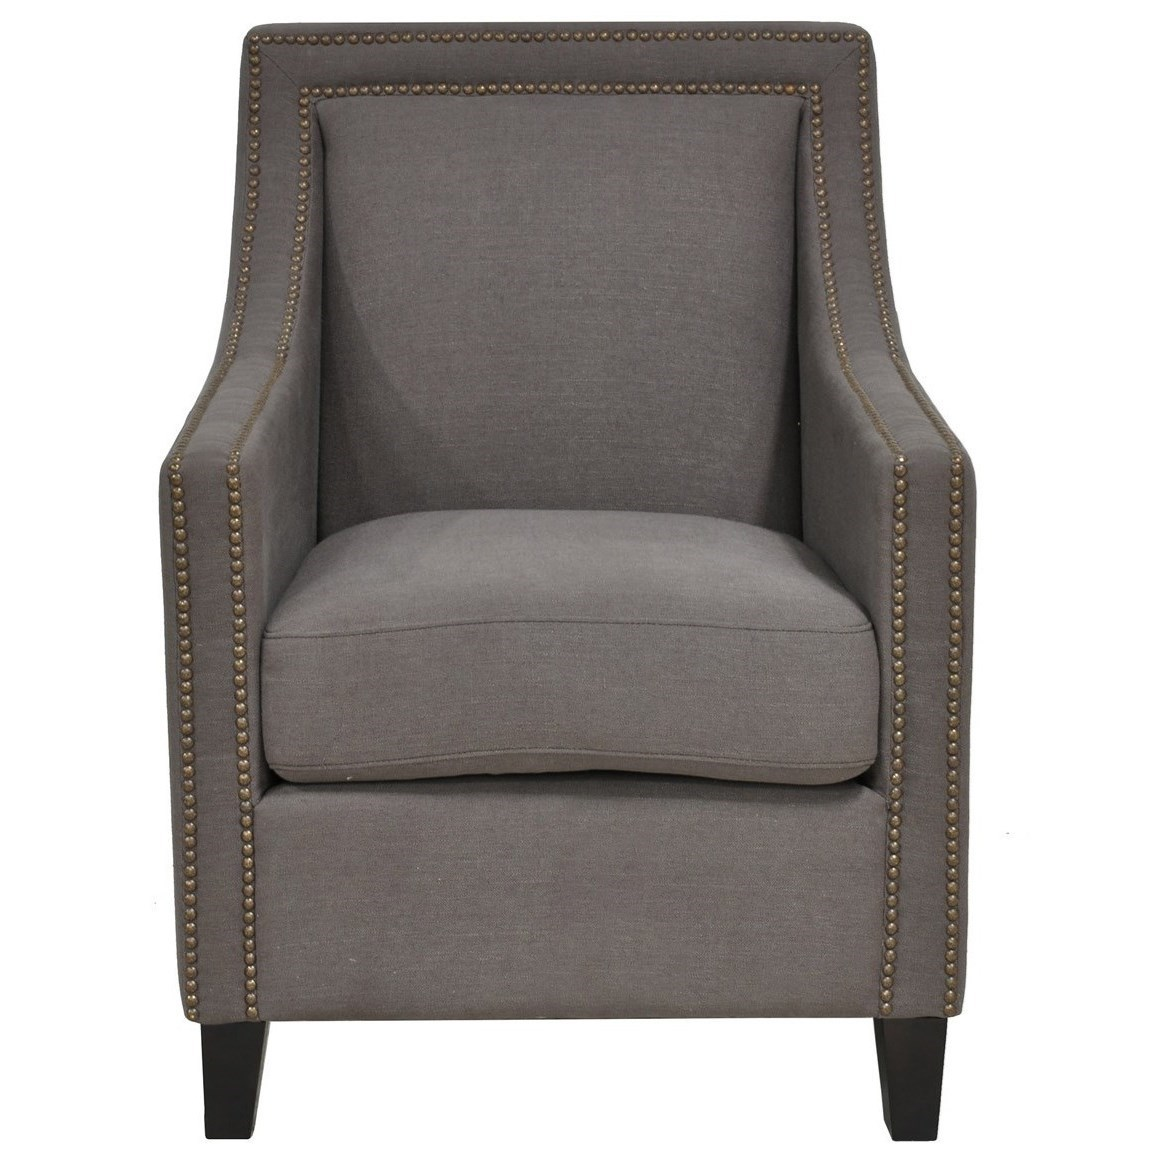 Classic home collina 53006111 club chair with nailhead for Classic home chairs